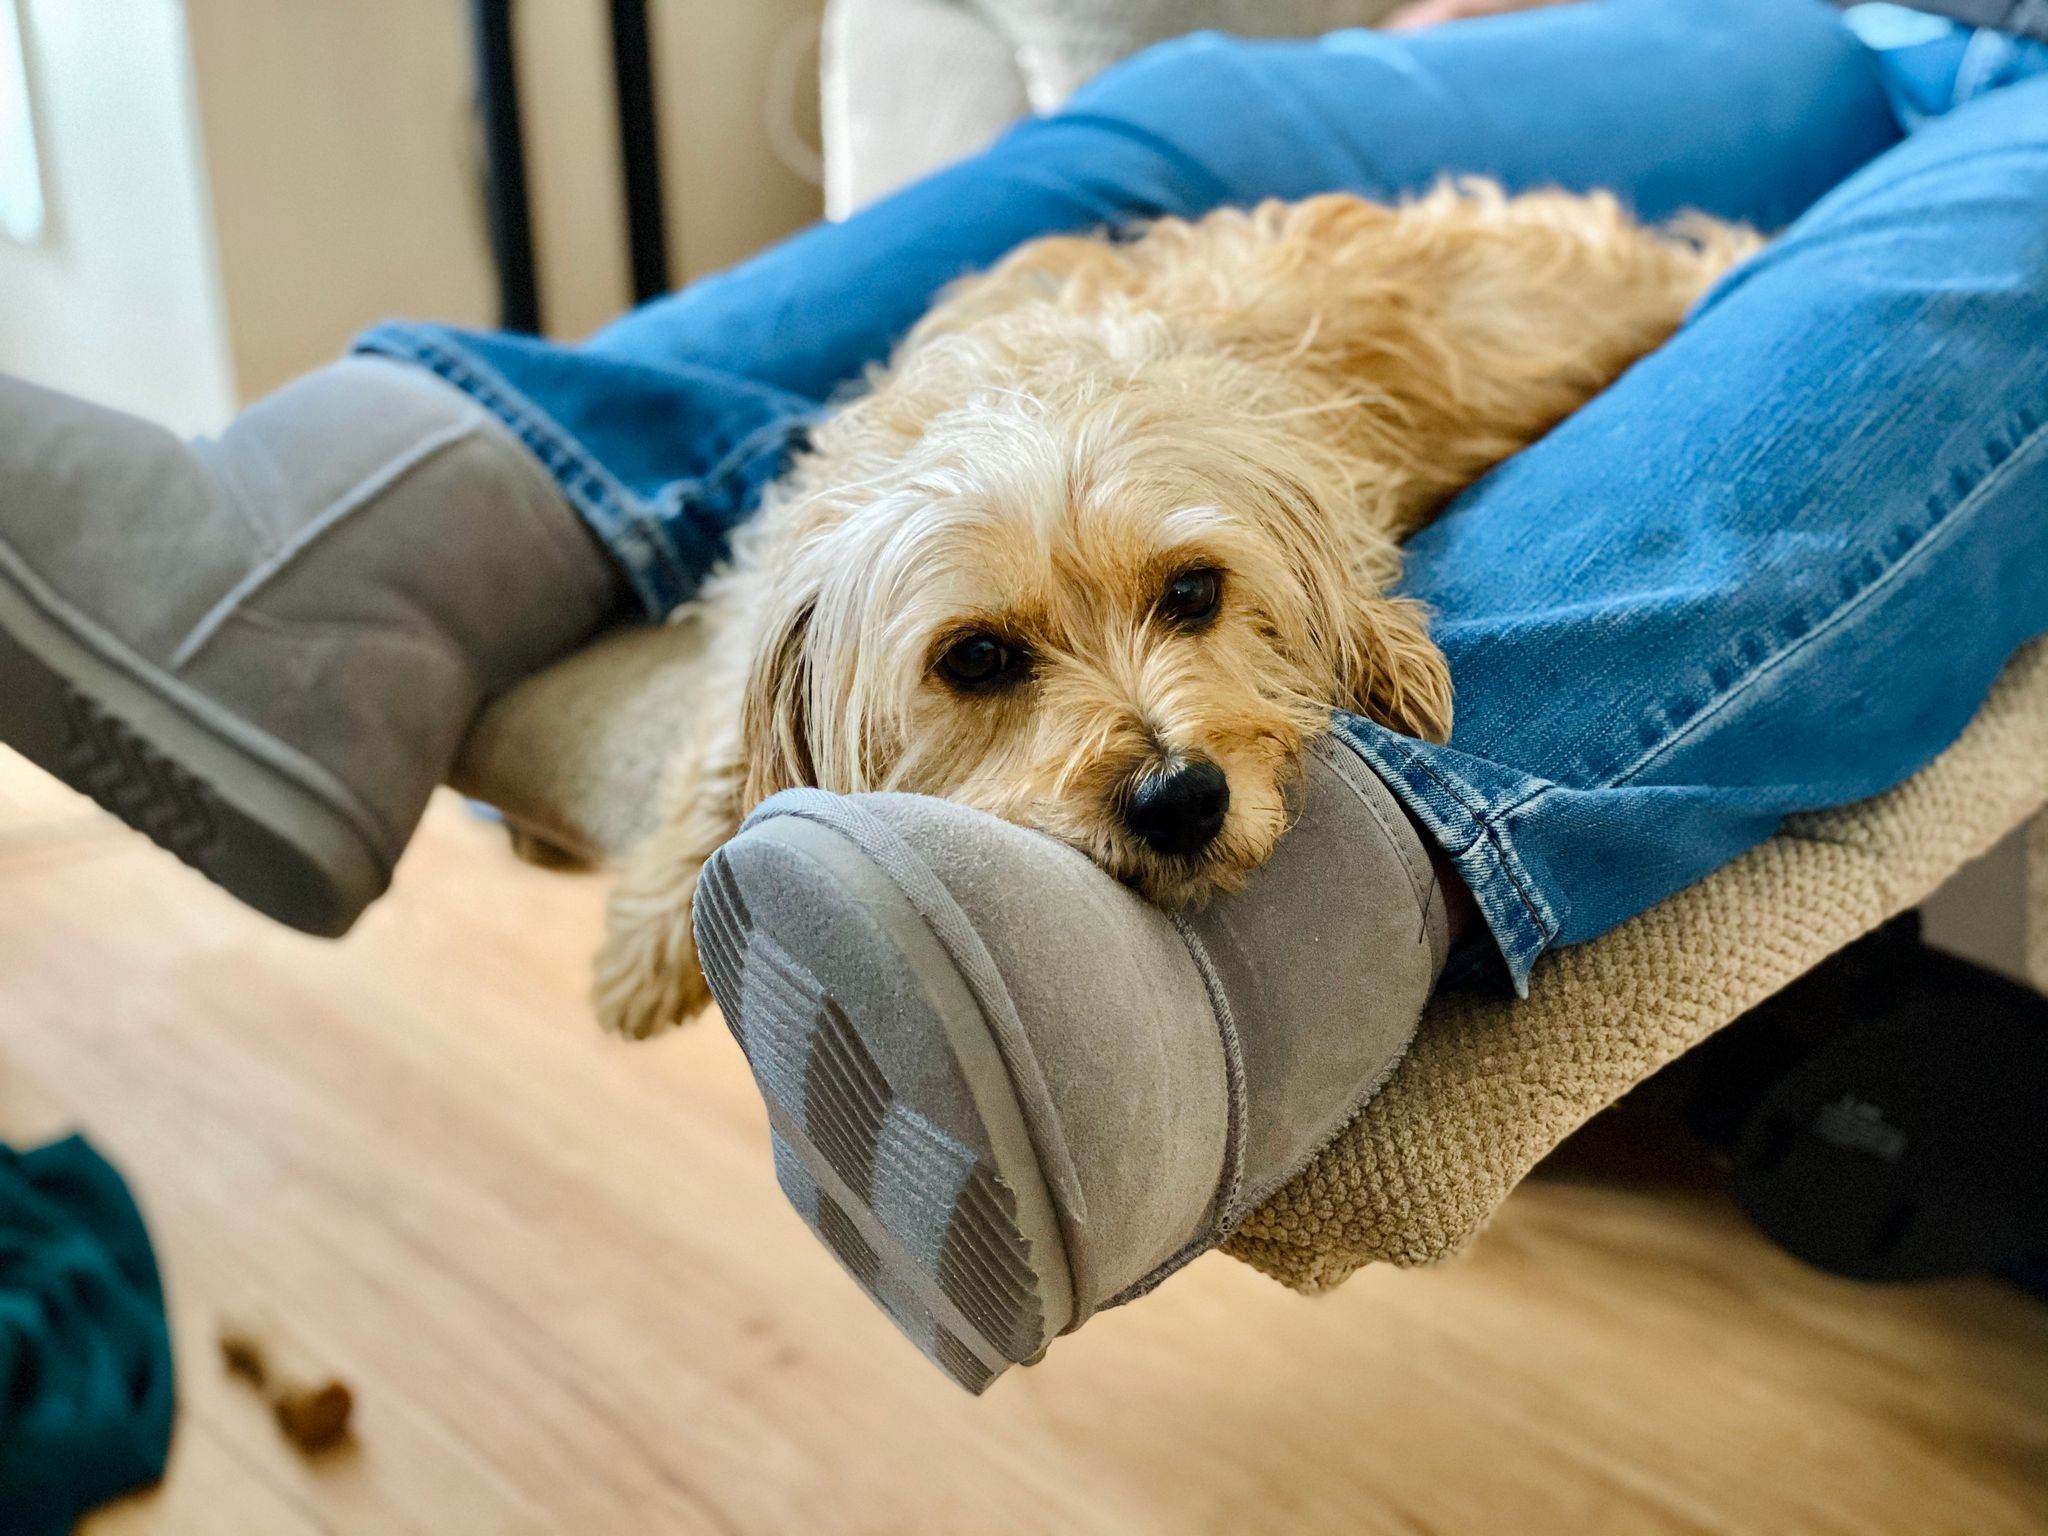 A photo of a small scruffy blonde dog with his head draped over a person's foot. The person is sitting on a reclining chair with her feet up, and one of the dog's feet is hanging off the end.